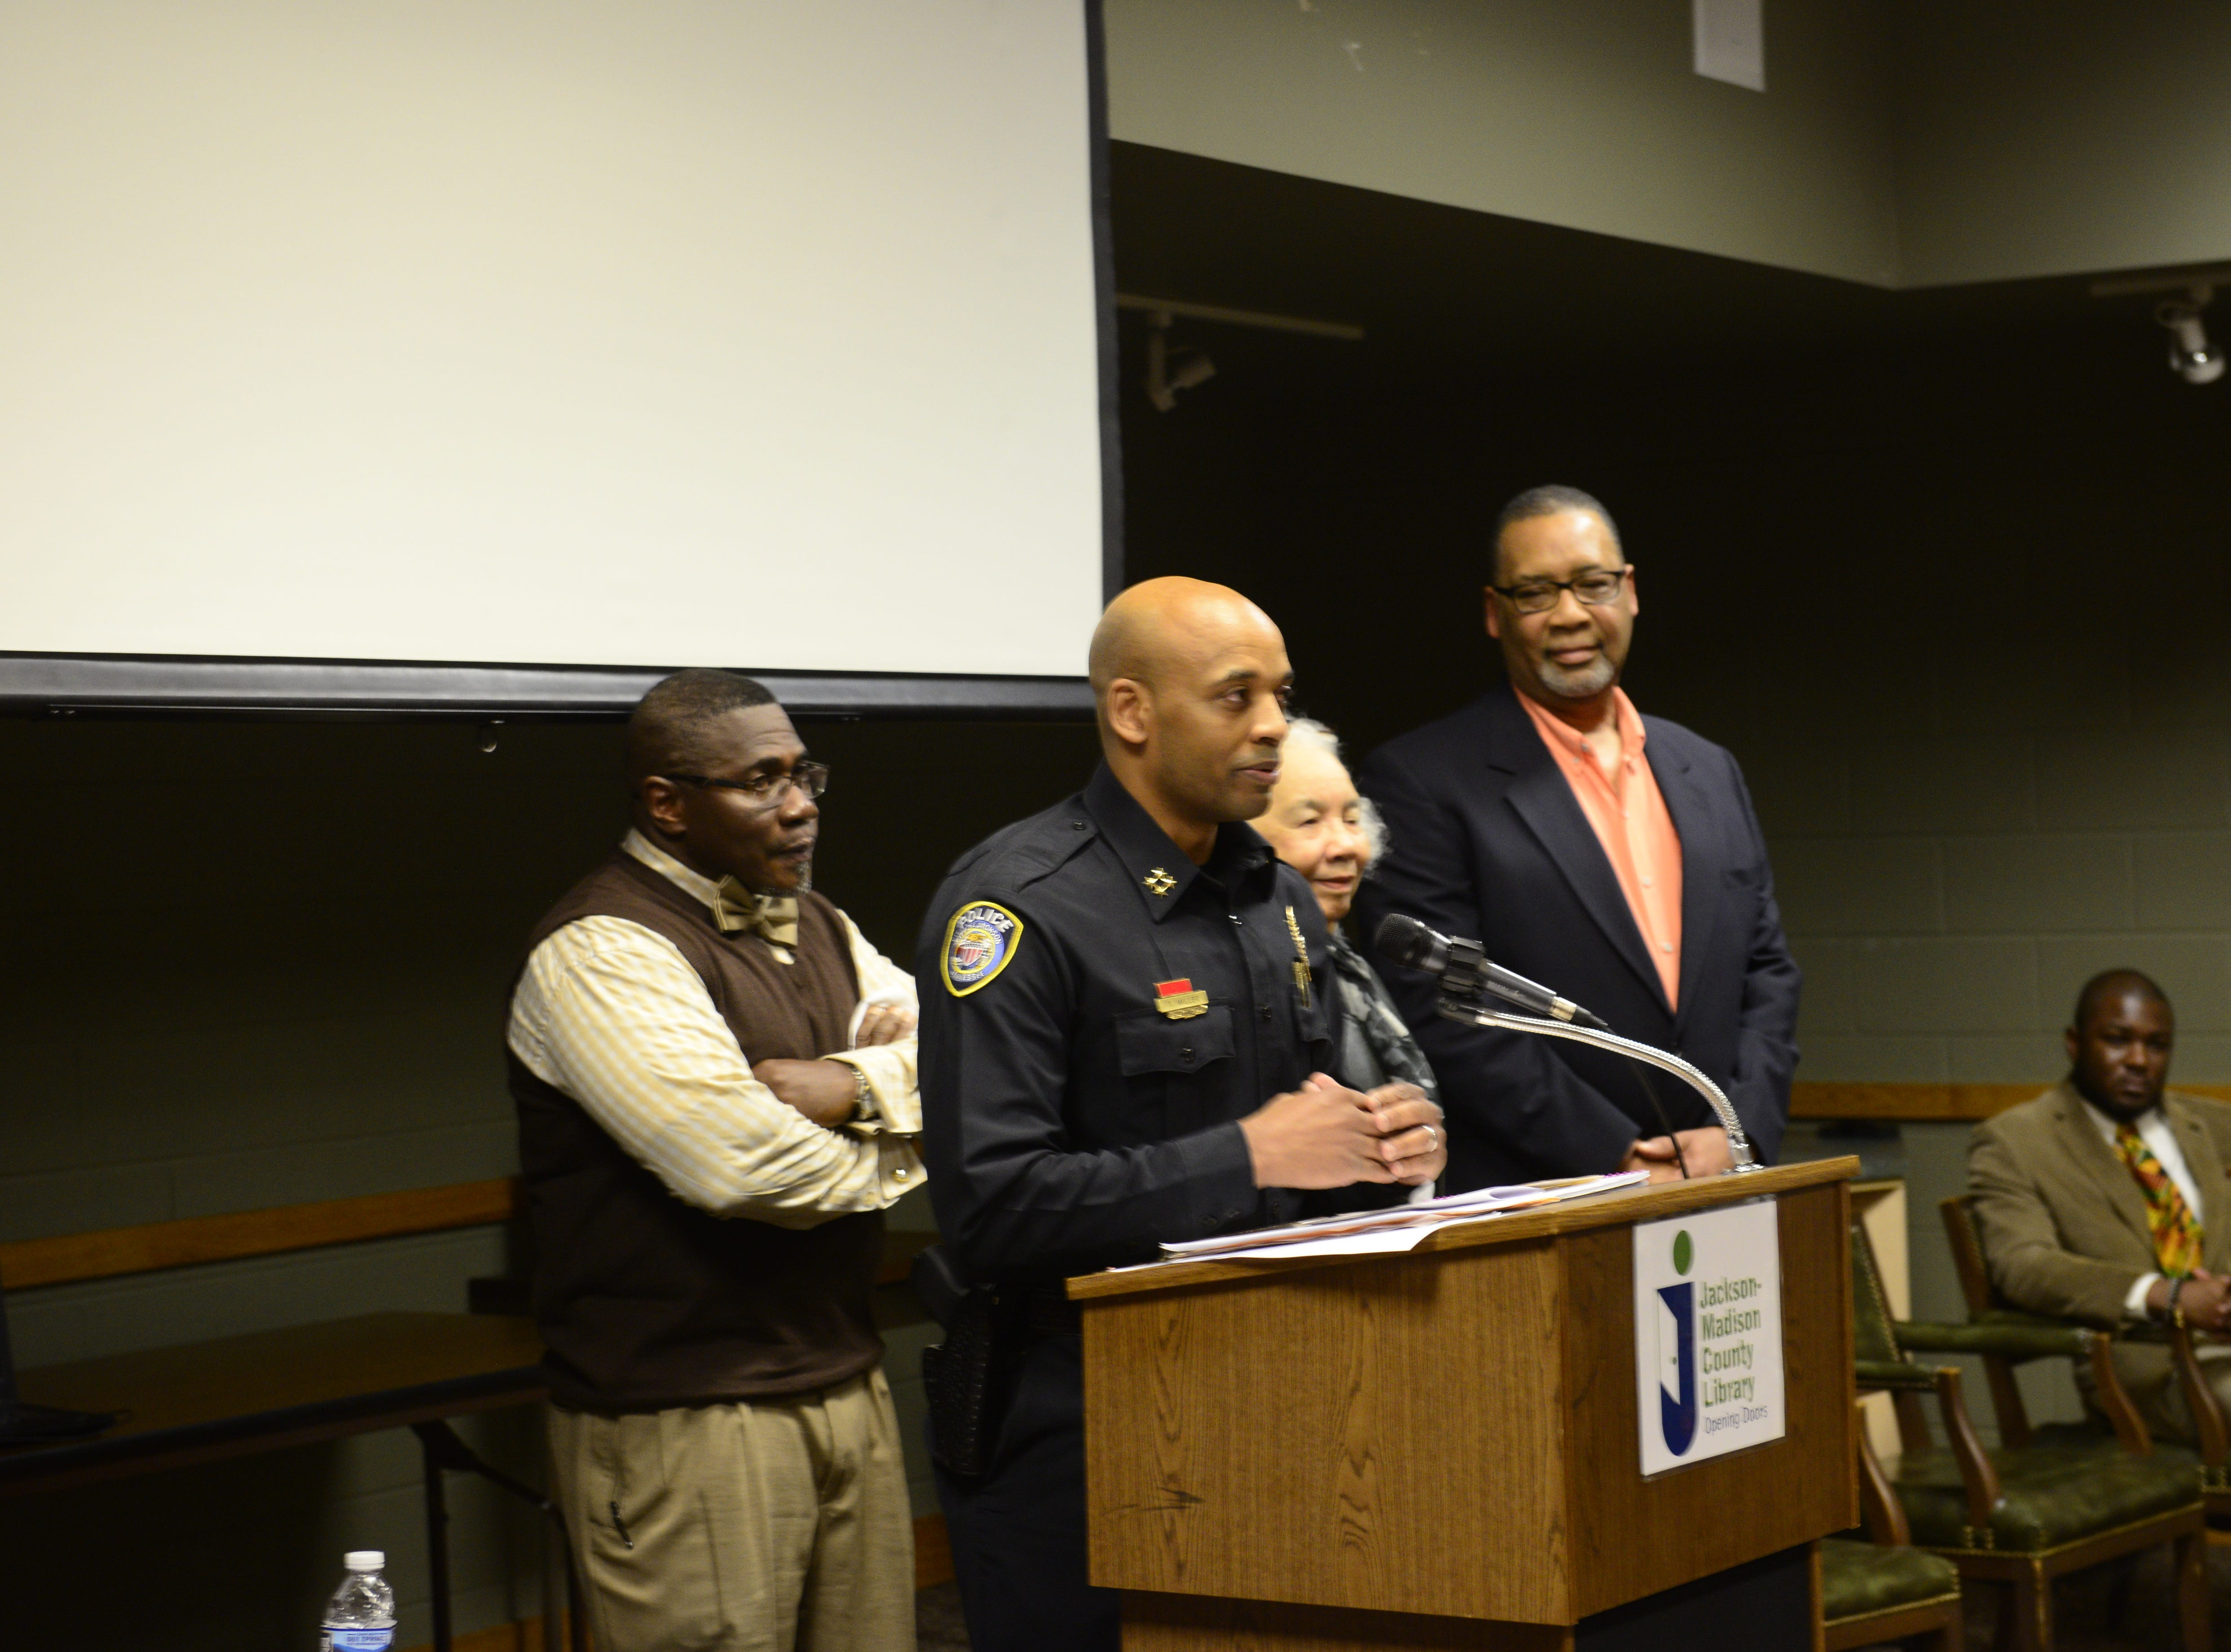 Jackson Police Department Deputy Chief Tyreece Miller speaks in honor of former JPD Deputy Chief James Cherry at the Jackson-Madison County Library in Jackson, Tenn. Feb. 27, 2019